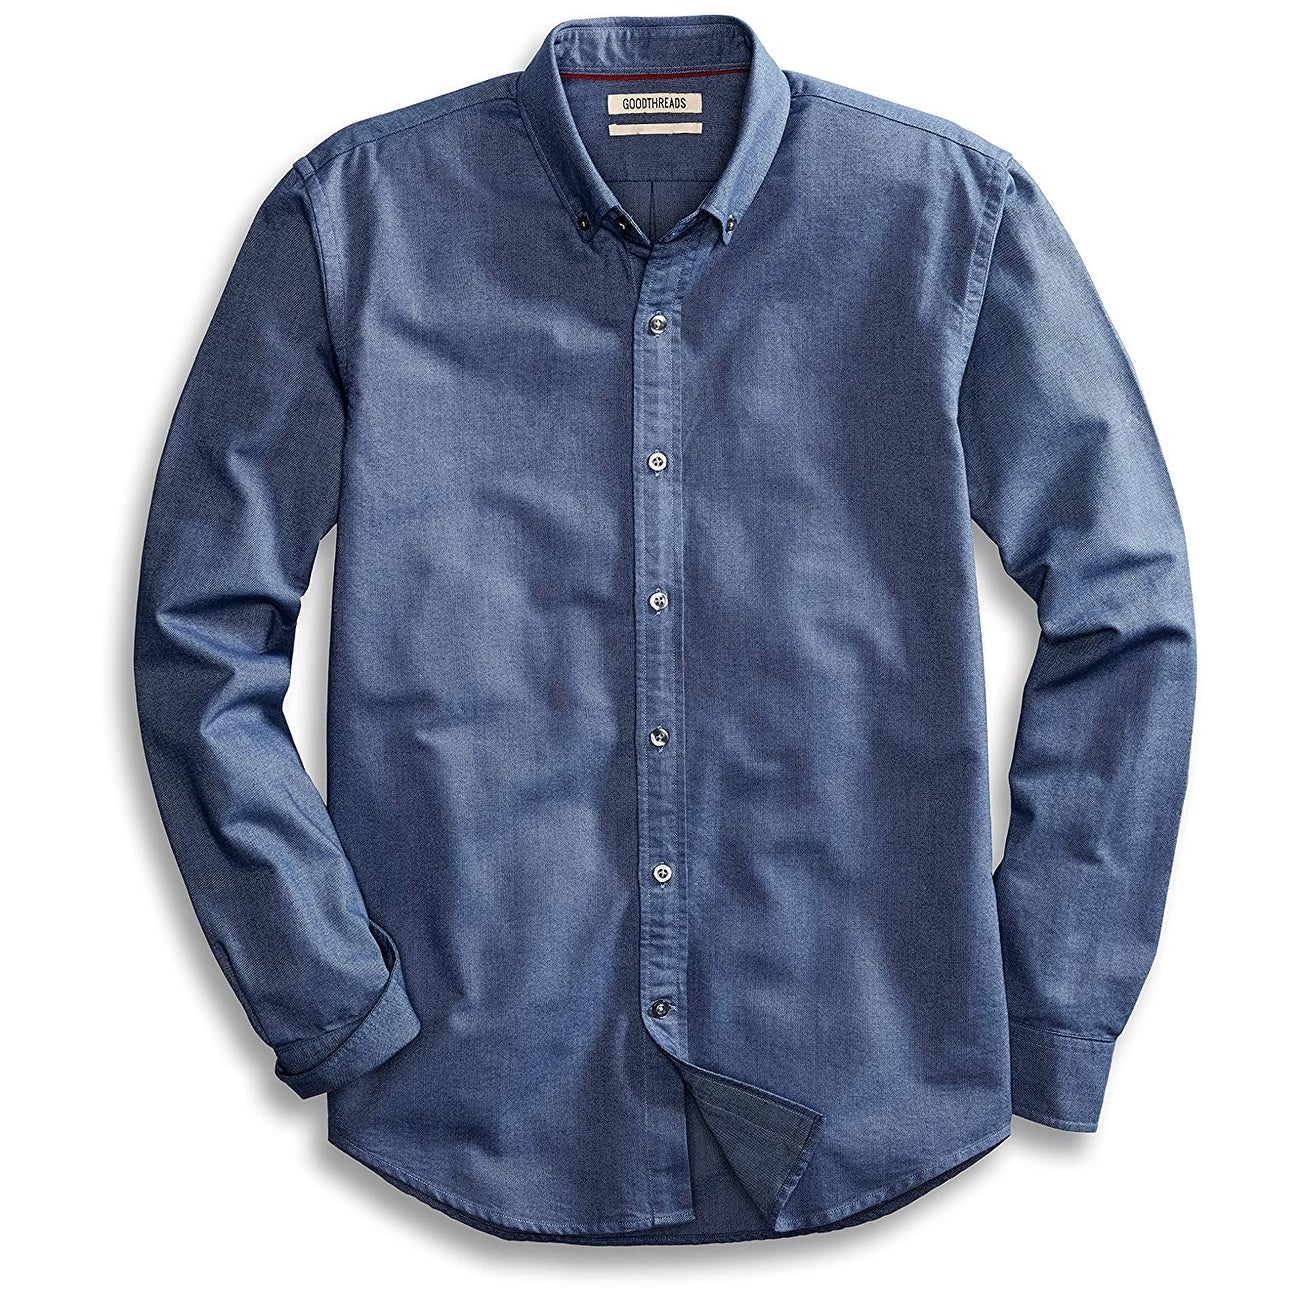 Brand Goodthreads Mens The Perfect Oxford Shirt Standard-Fit Long-Sleeve Solid